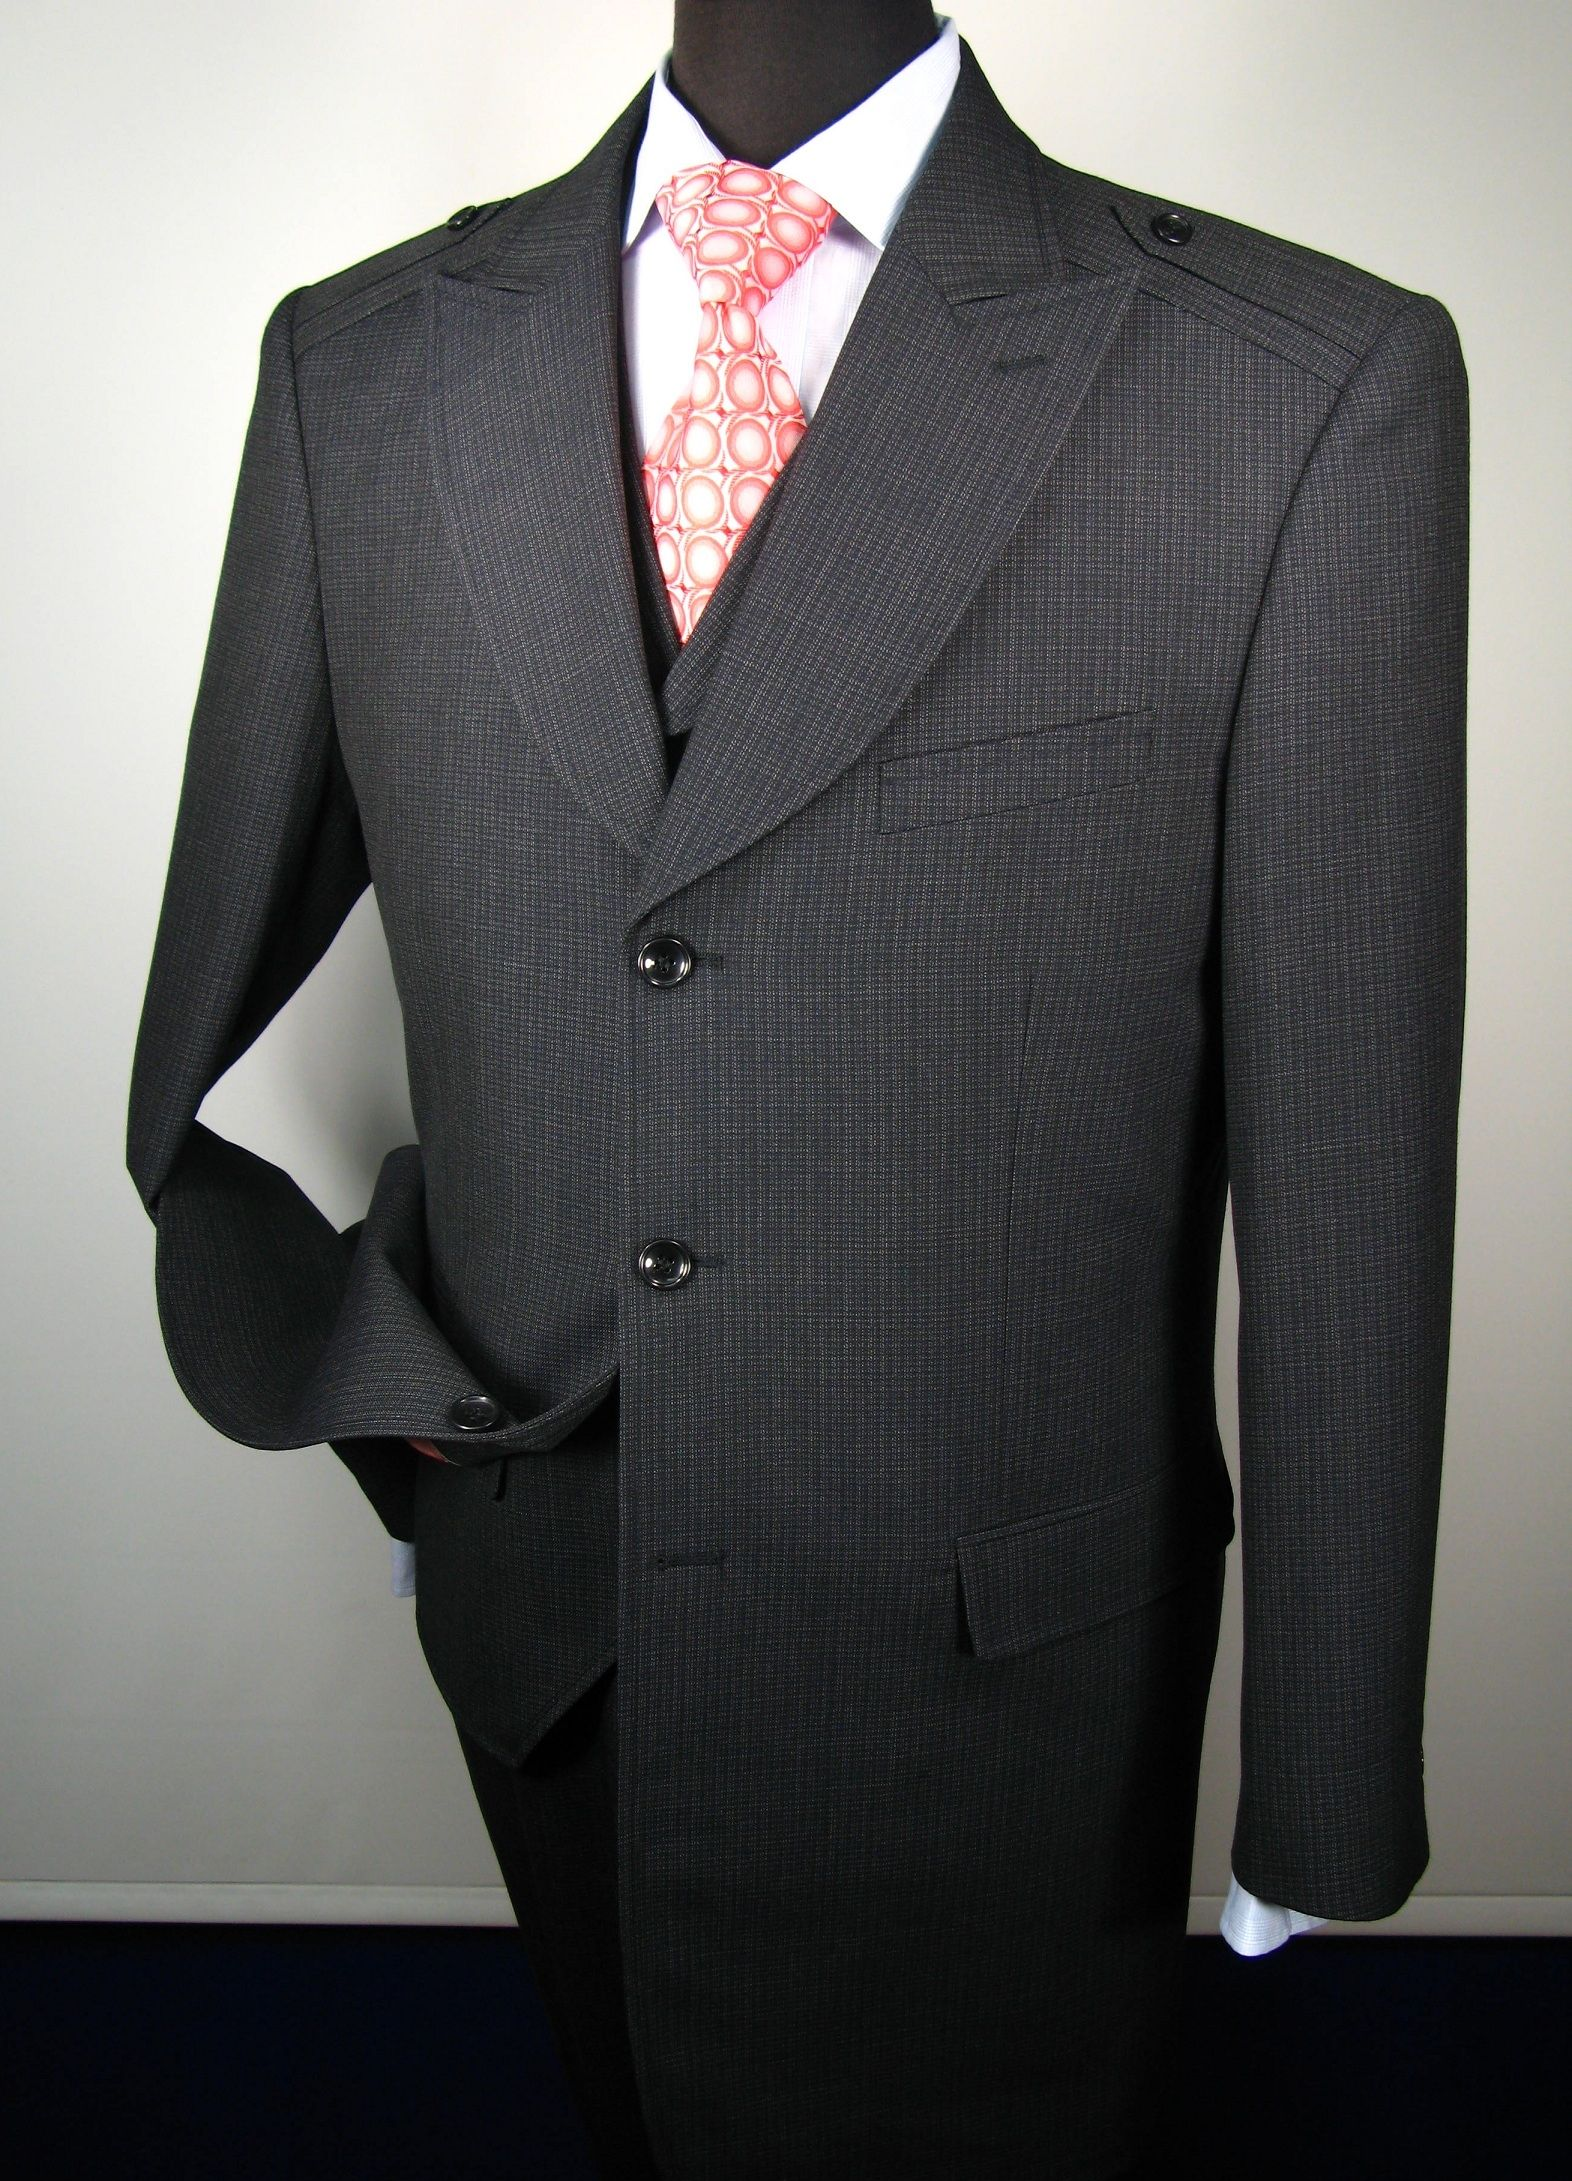 d8d89aef This Solo 360 mens 3 piece suit comes in fashion length. The single  breasted 3 button, 34 inch jacket includes peak lapel, shoulder patch,  besom pocket, ...